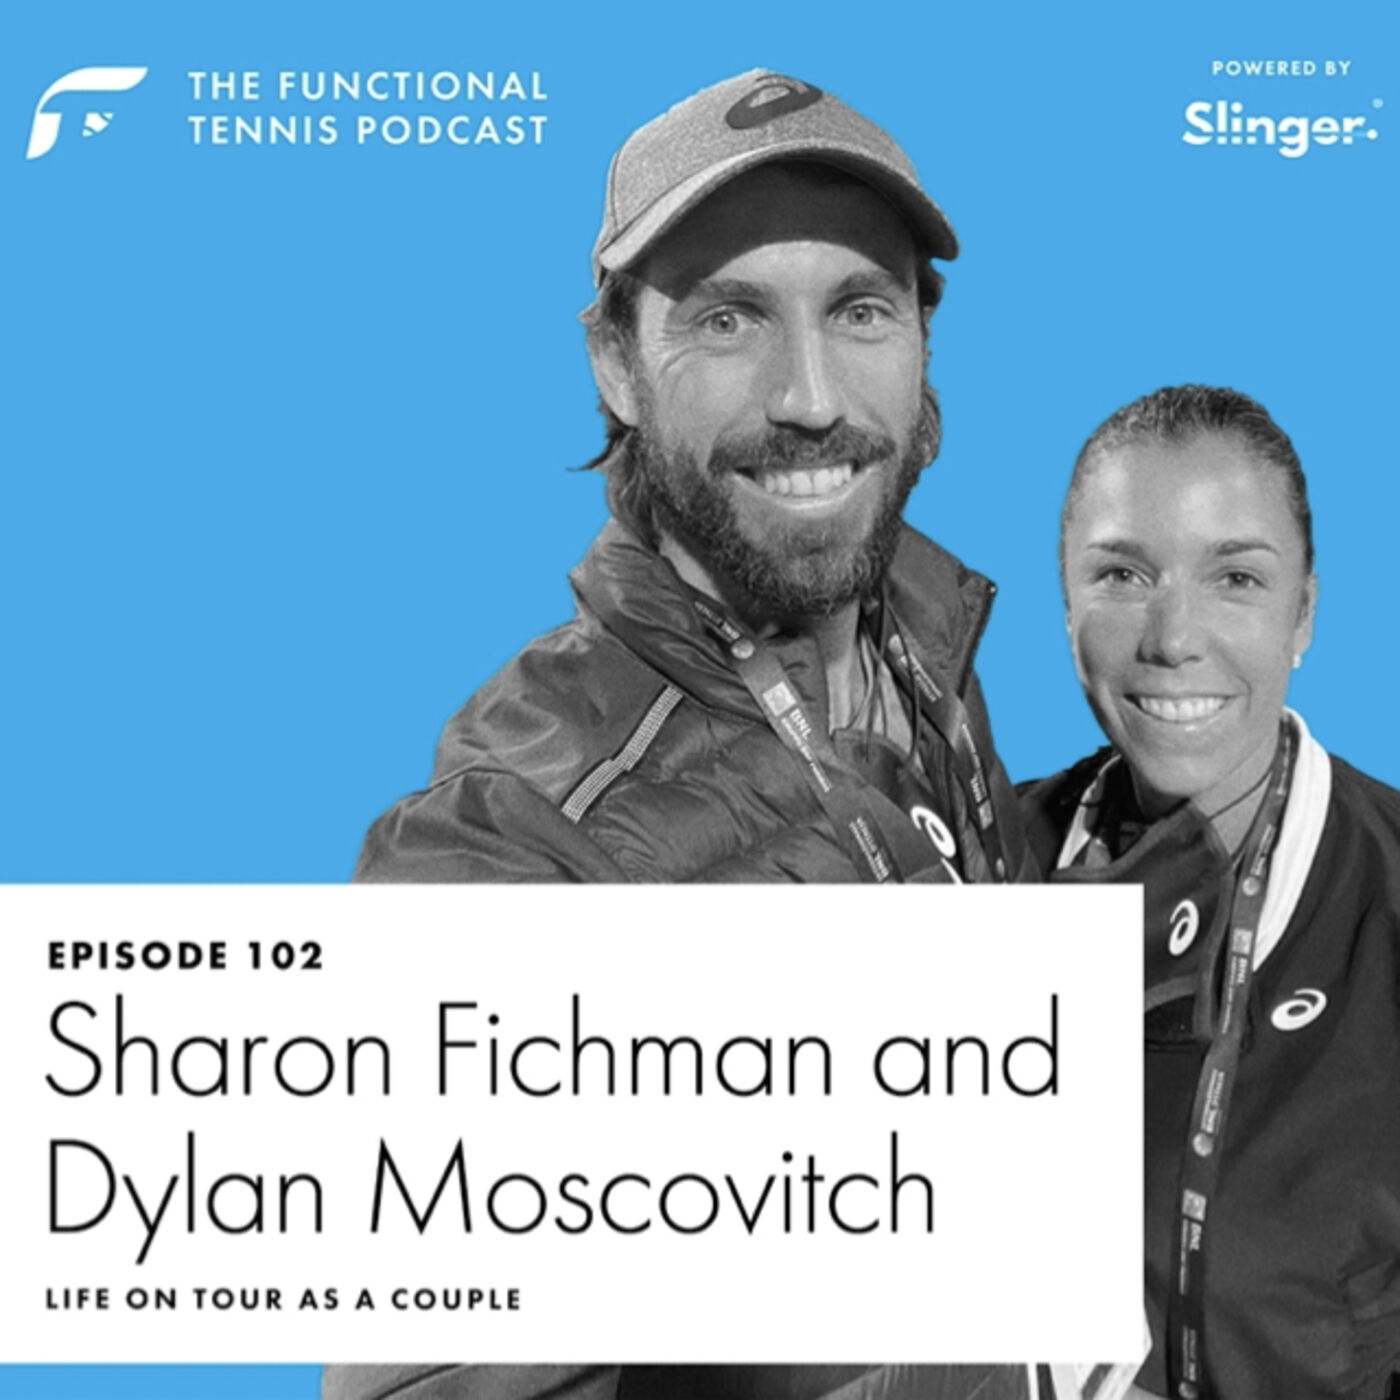 Sharon Fichman & Dylan Moscovitch - Life on Tour as a Couple